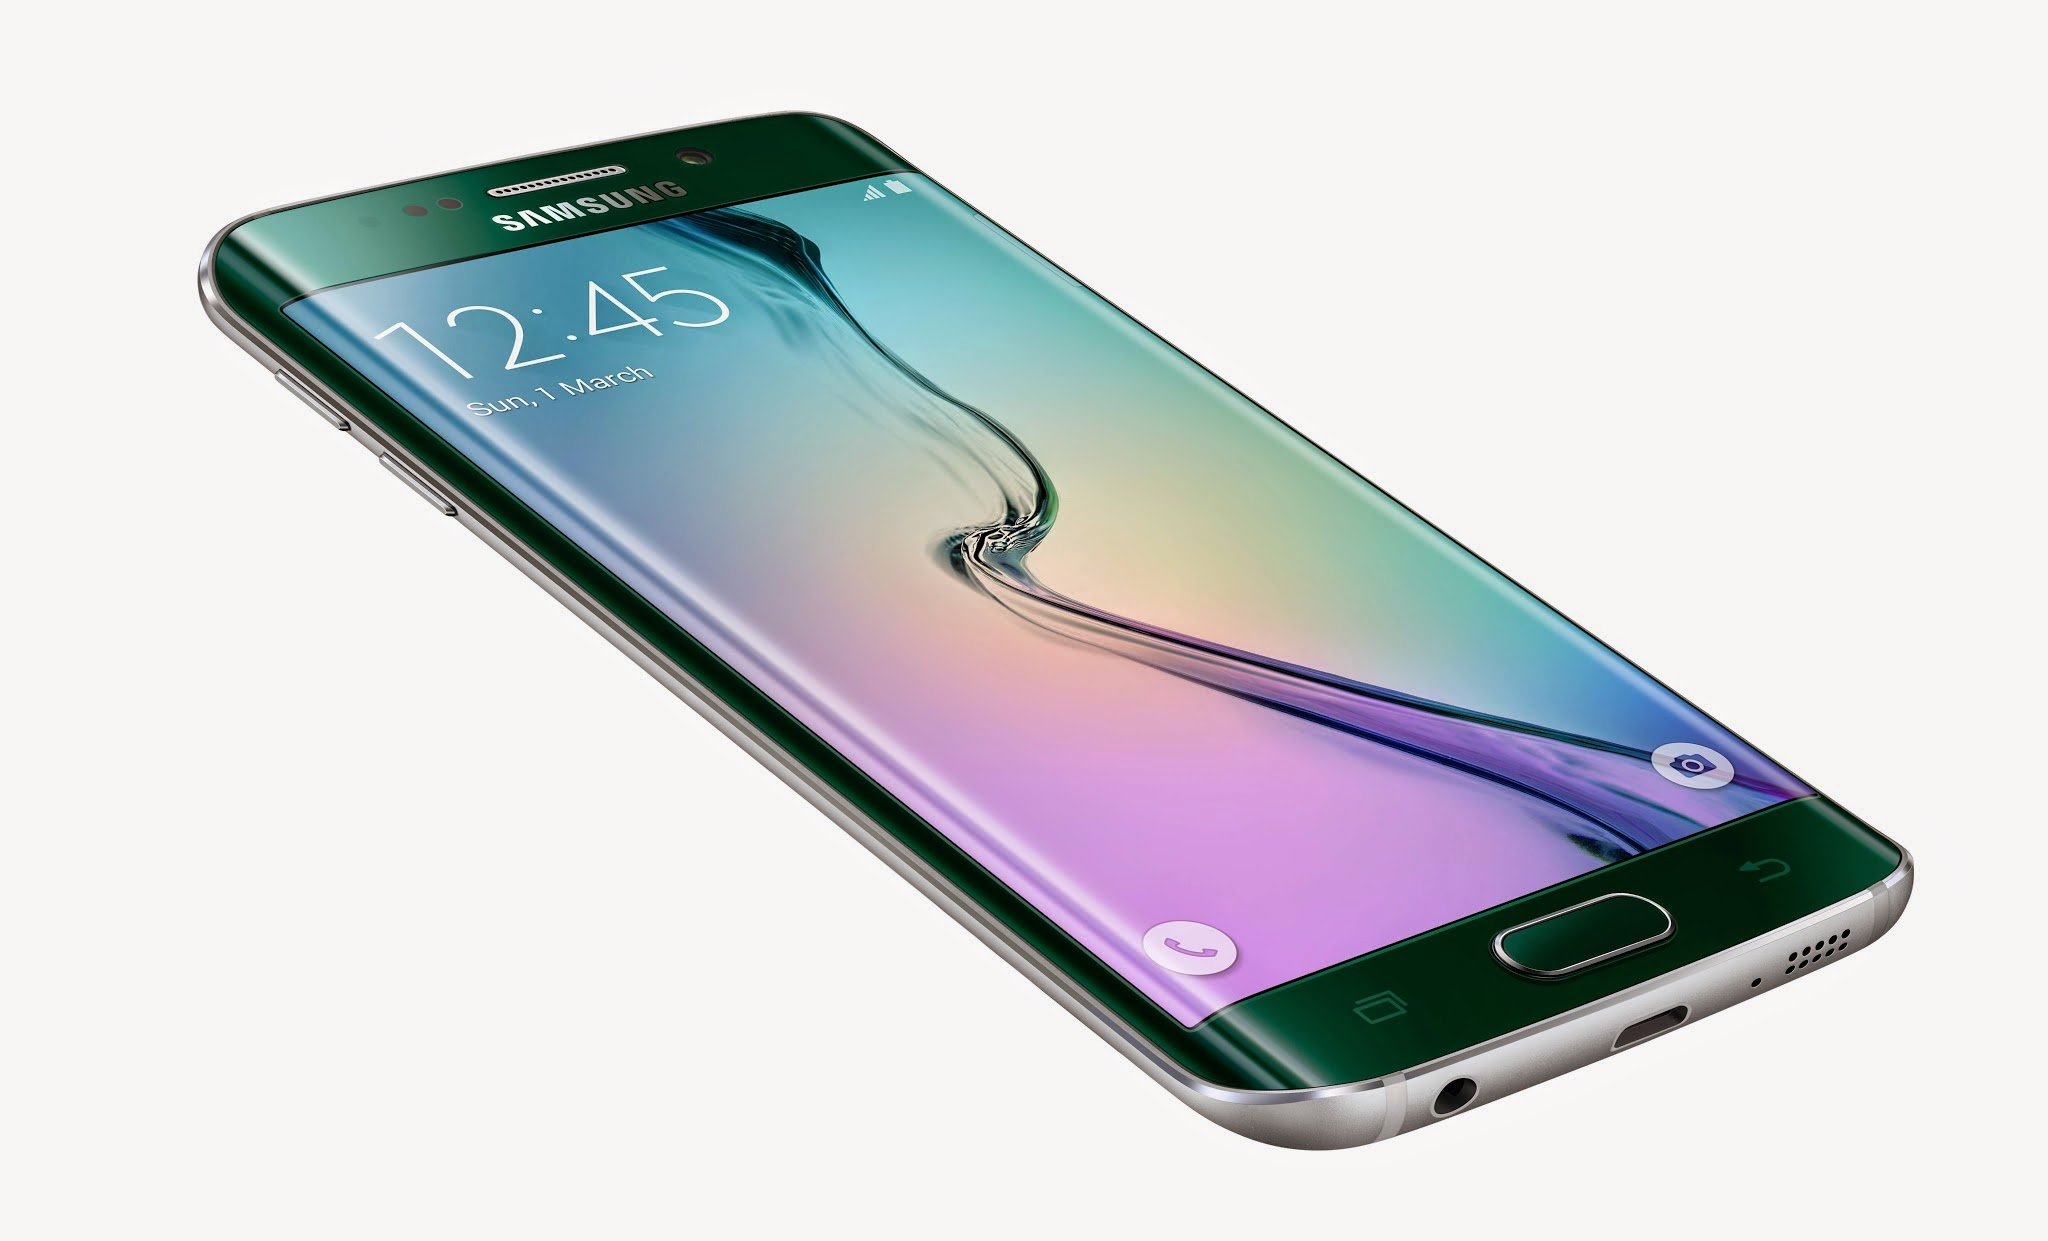 #MWC2015 - Samsung officialise le Galaxy S6 Edge